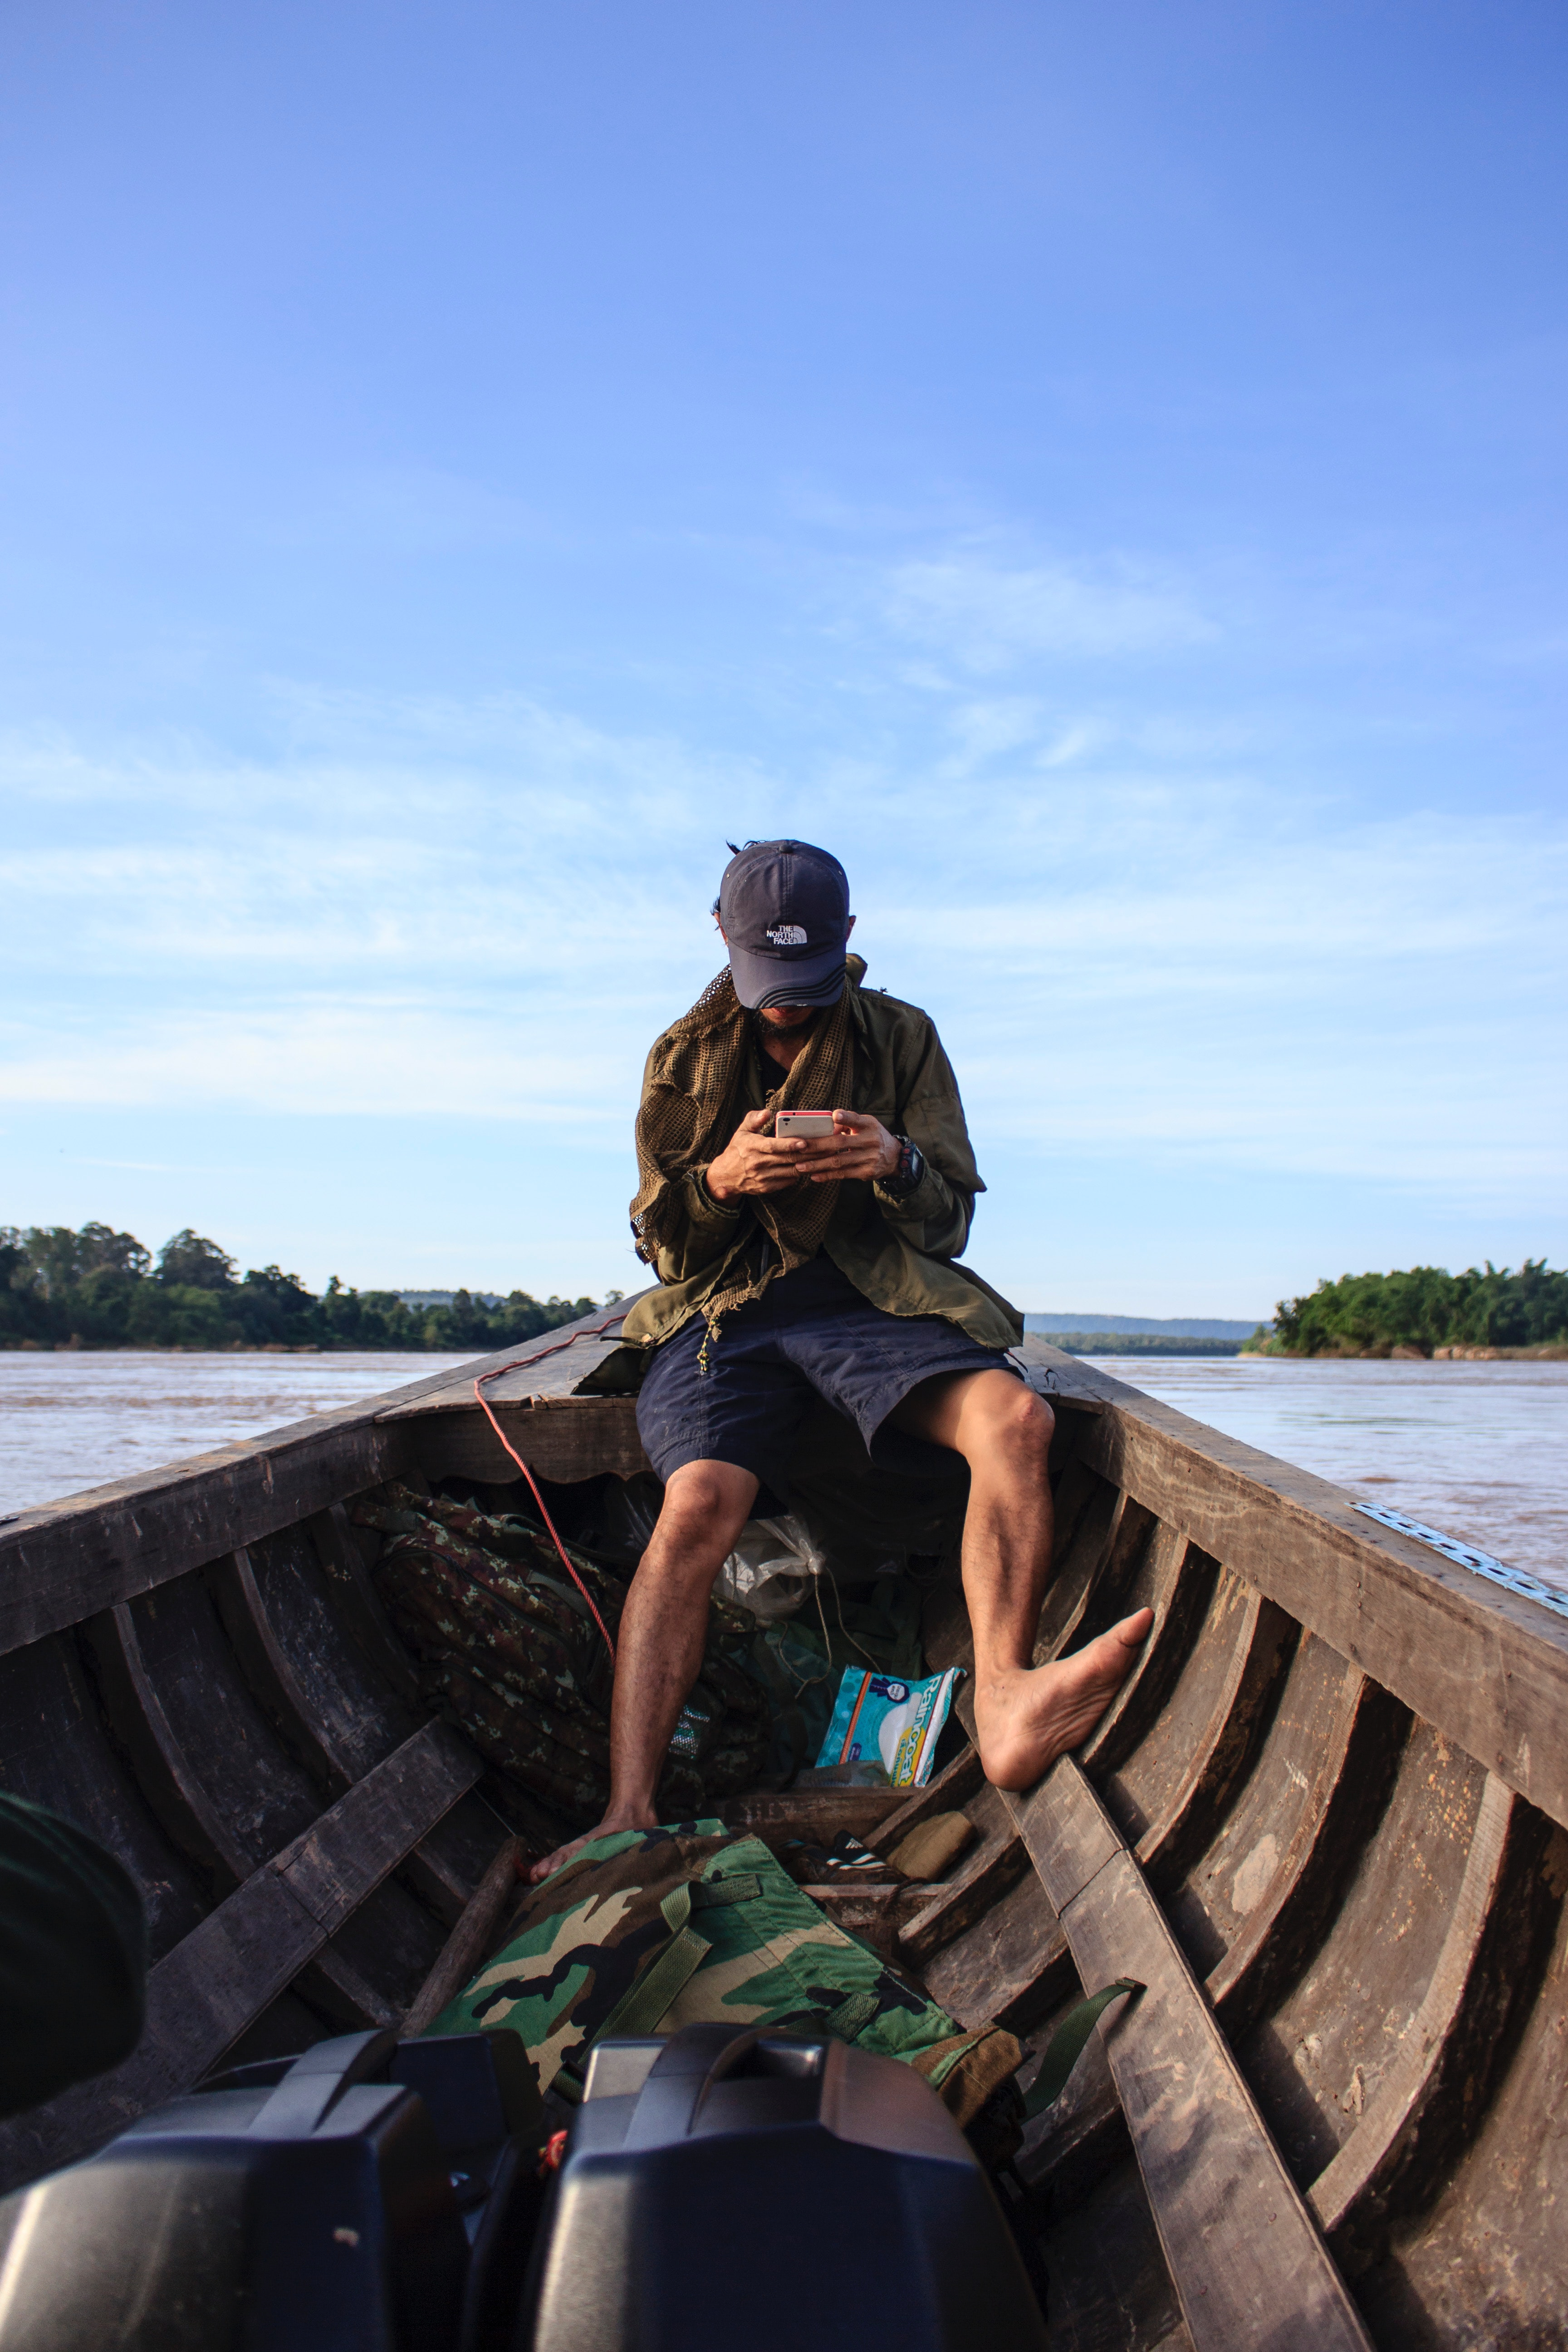 Man Wearing Black Cap Sitting Inside a Boat, Background, Watercraft, Water, Trees, HQ Photo